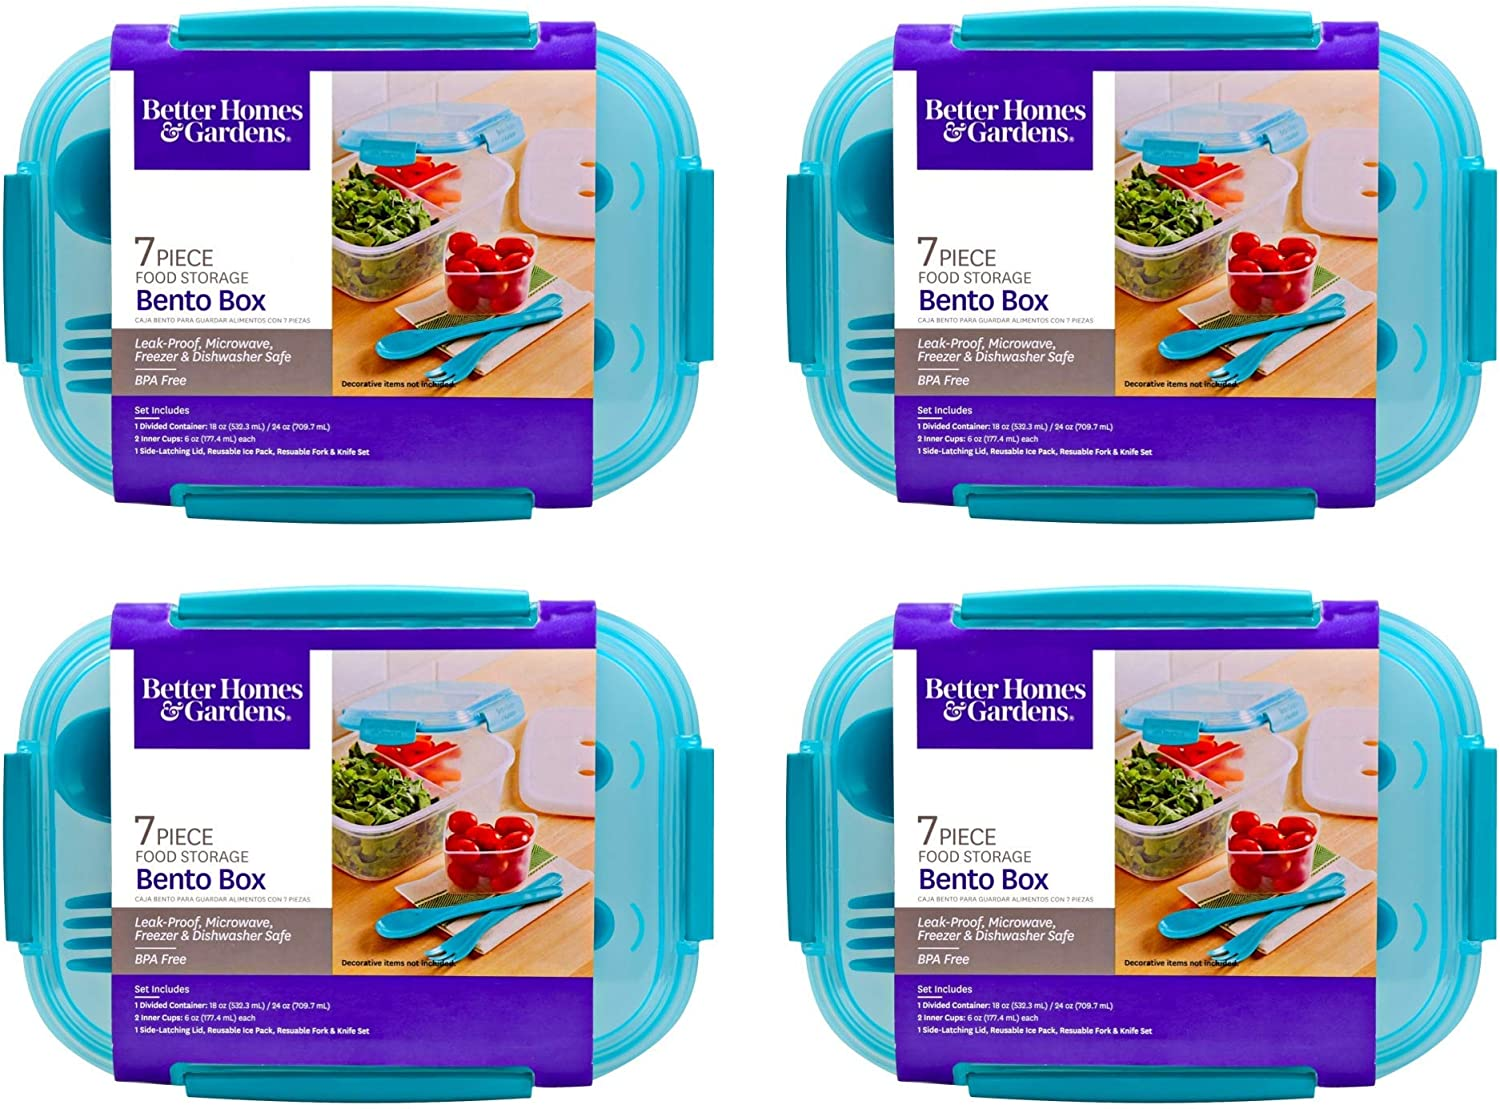 Bento 7 Piece Lunch Box (4 Pack, 8.7 x 6.5 x 3.5 in) Food Storage, Aqua Clear Reusable Dishwasher Microwavable BPA Free